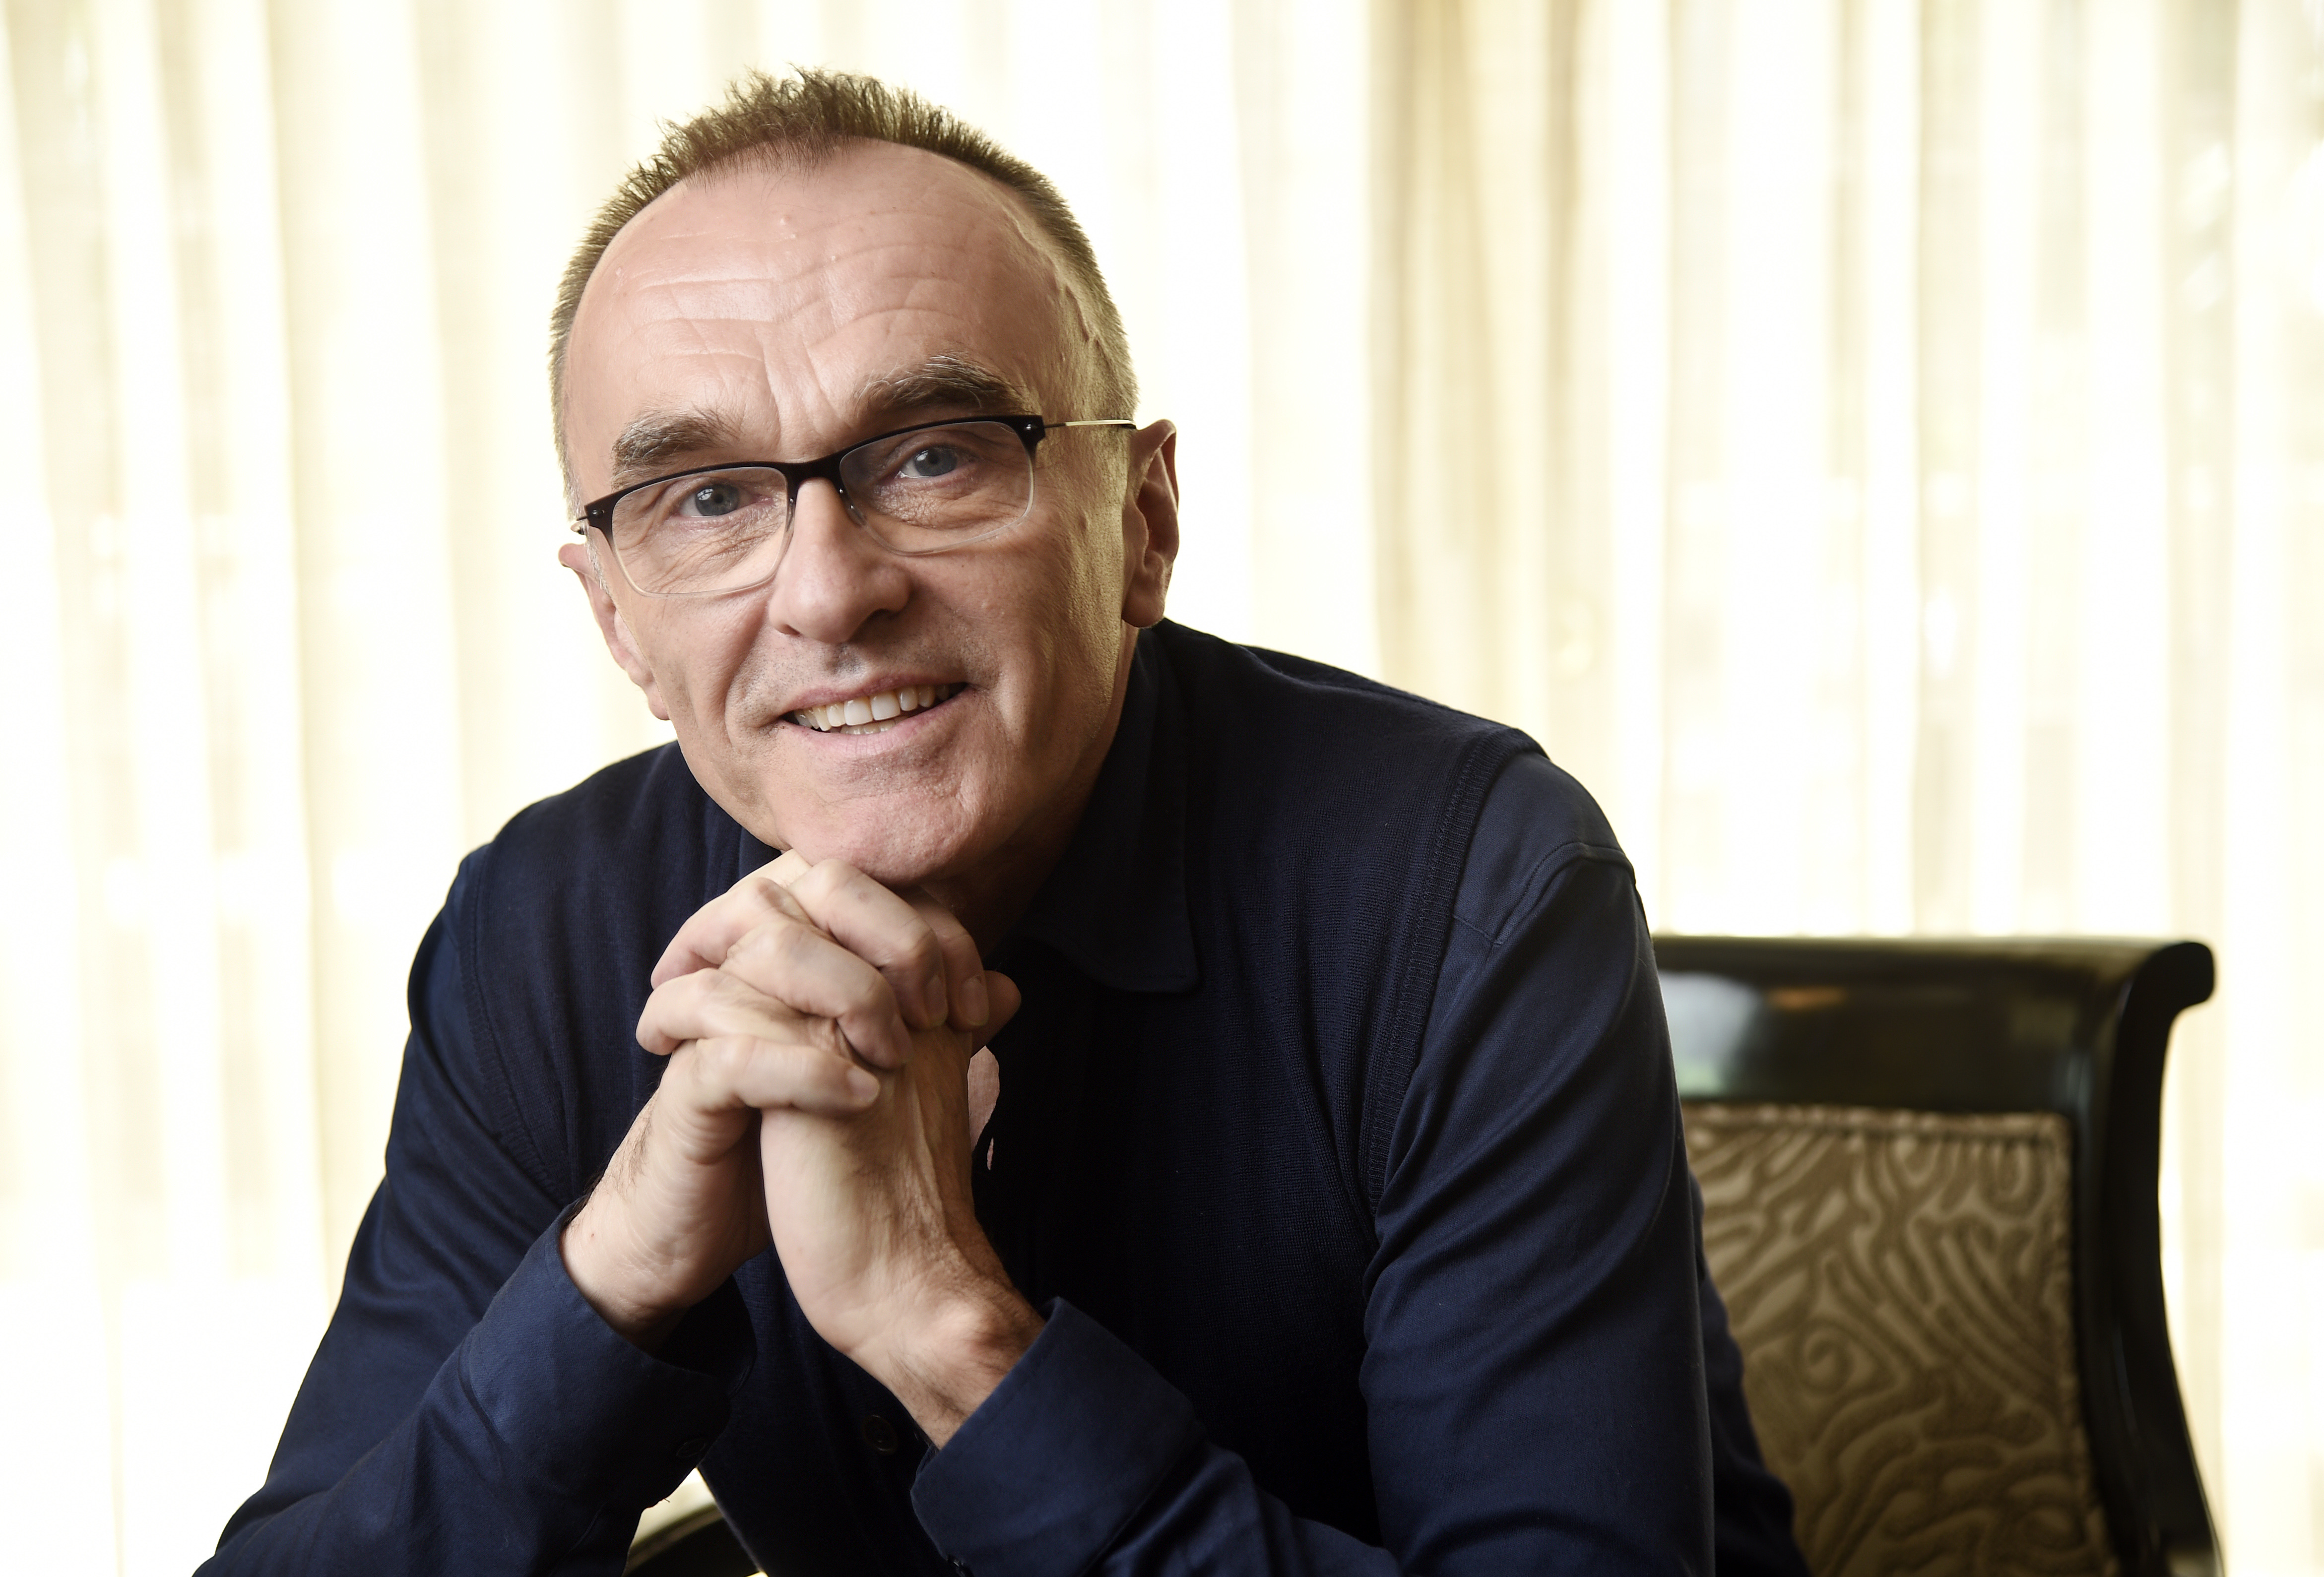 """Director Danny Boyle poses for a portrait at the Four Seasons Hotel in Beverly Hills, Calif. in this March 6, 2017 photo, to promote his new film, """"T2: Trainspotting."""" (Photo by Chris Pizzello/Invision/AP)"""